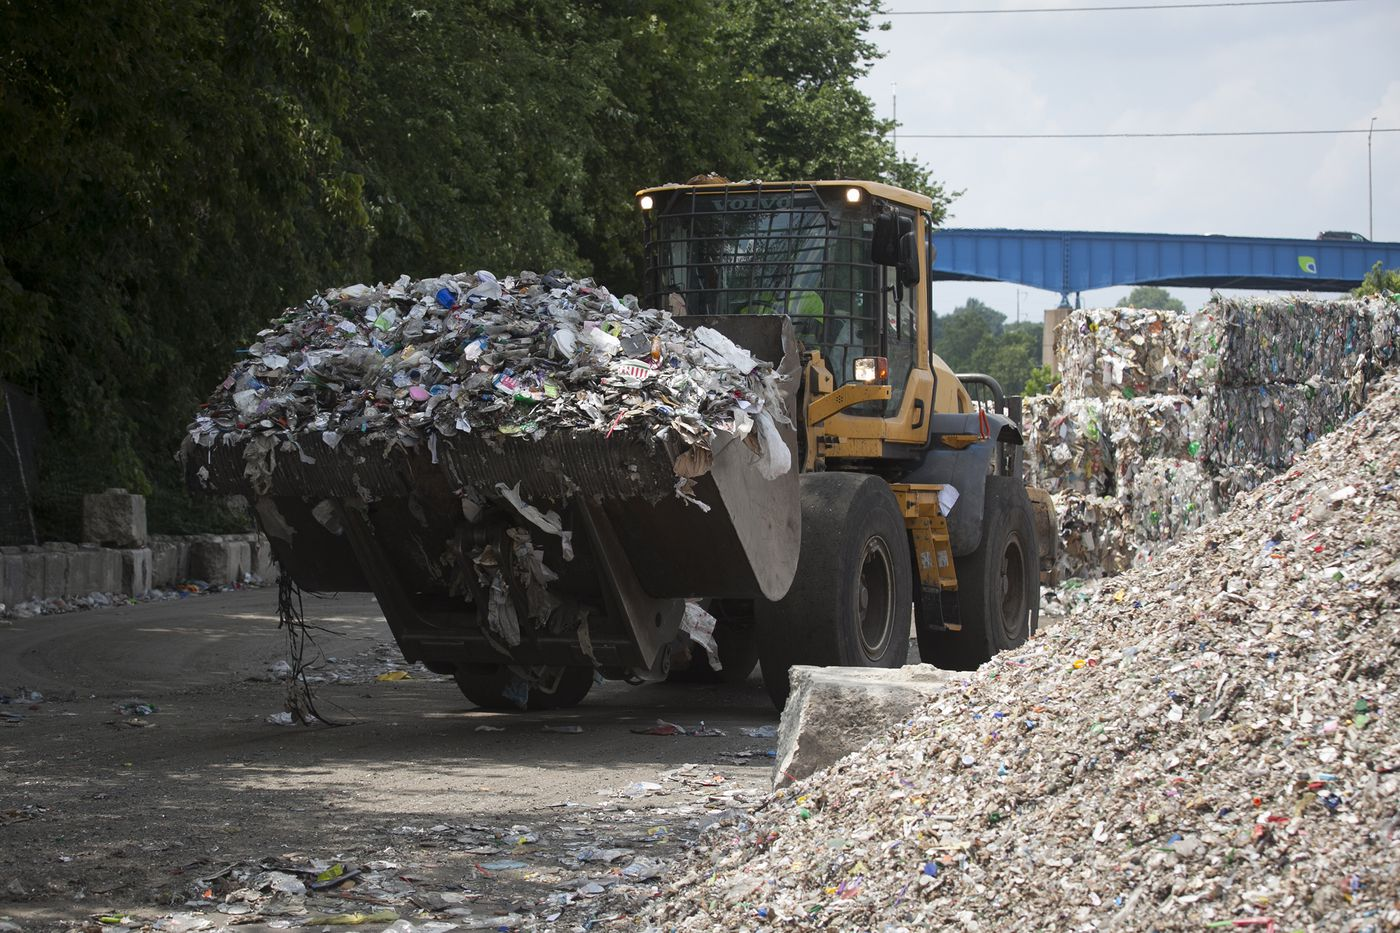 Recycling isn't helping Philly, Mike Pence is in town, where will Made In America go? | Morning Newsletter